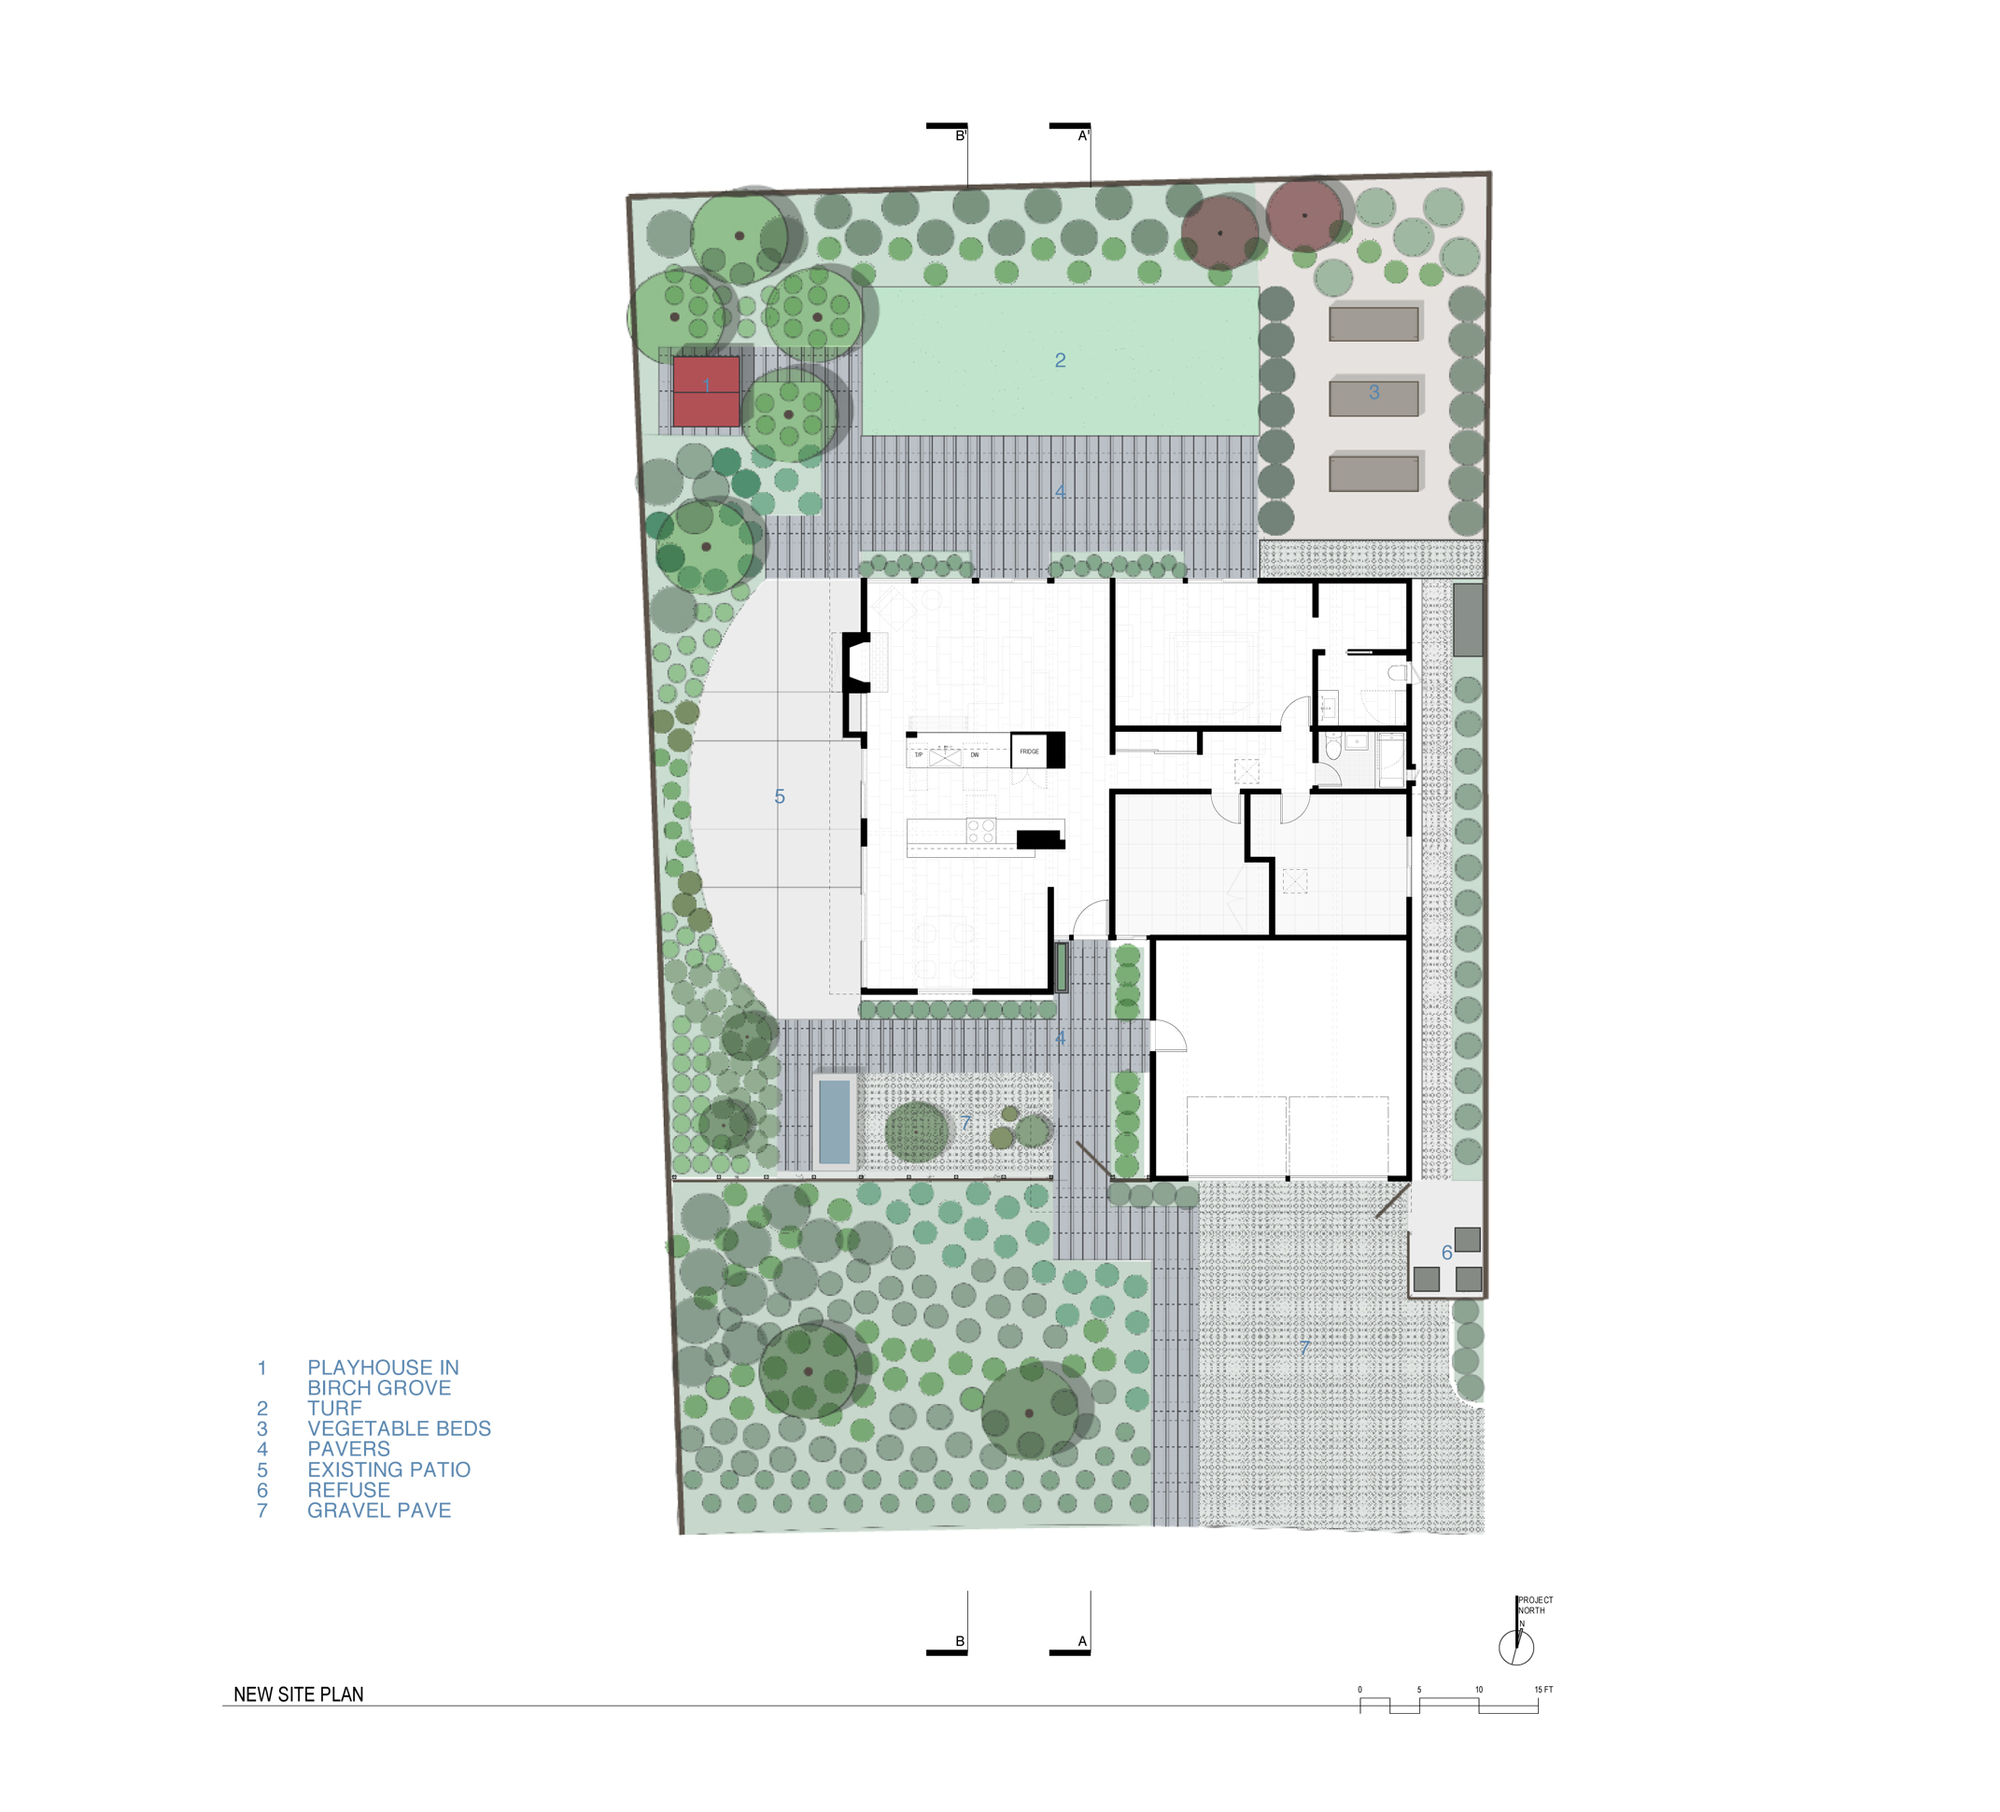 5306c8fec07a80c45f0000d5_shoup-residence-buildin-lab_shoup_siteplan